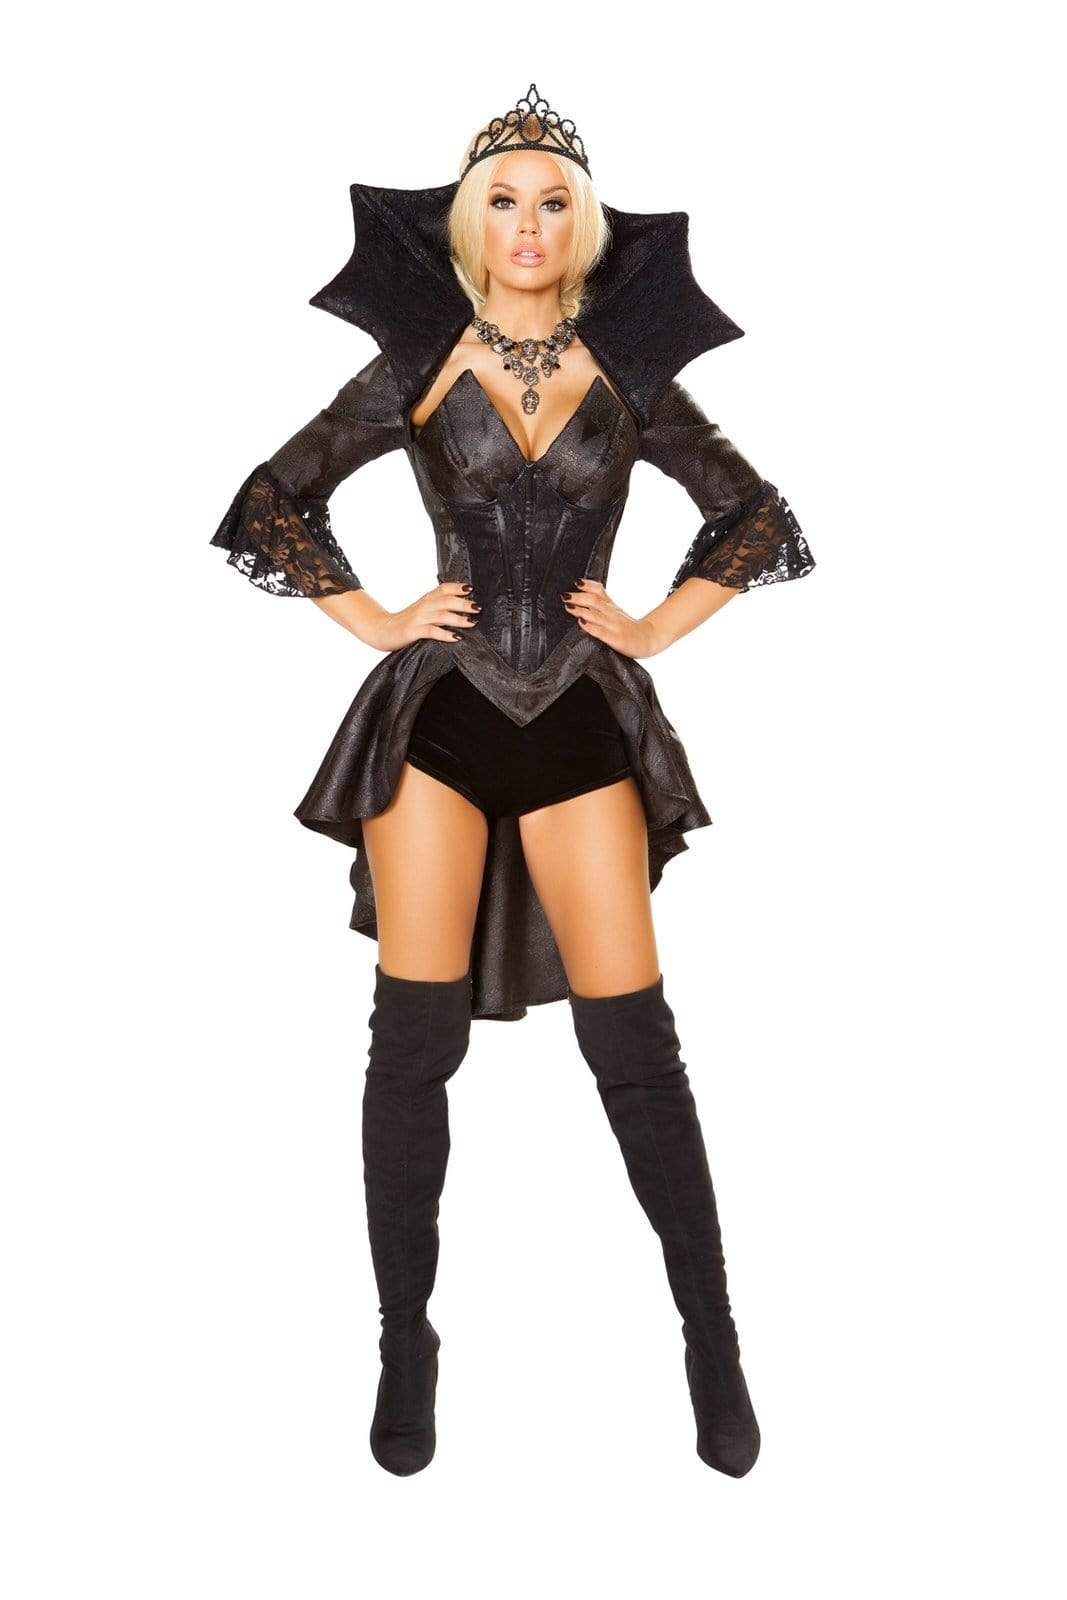 Roma Queen of Darkness Costume Apparel & Accessories > Costumes & Accessories > Costumes